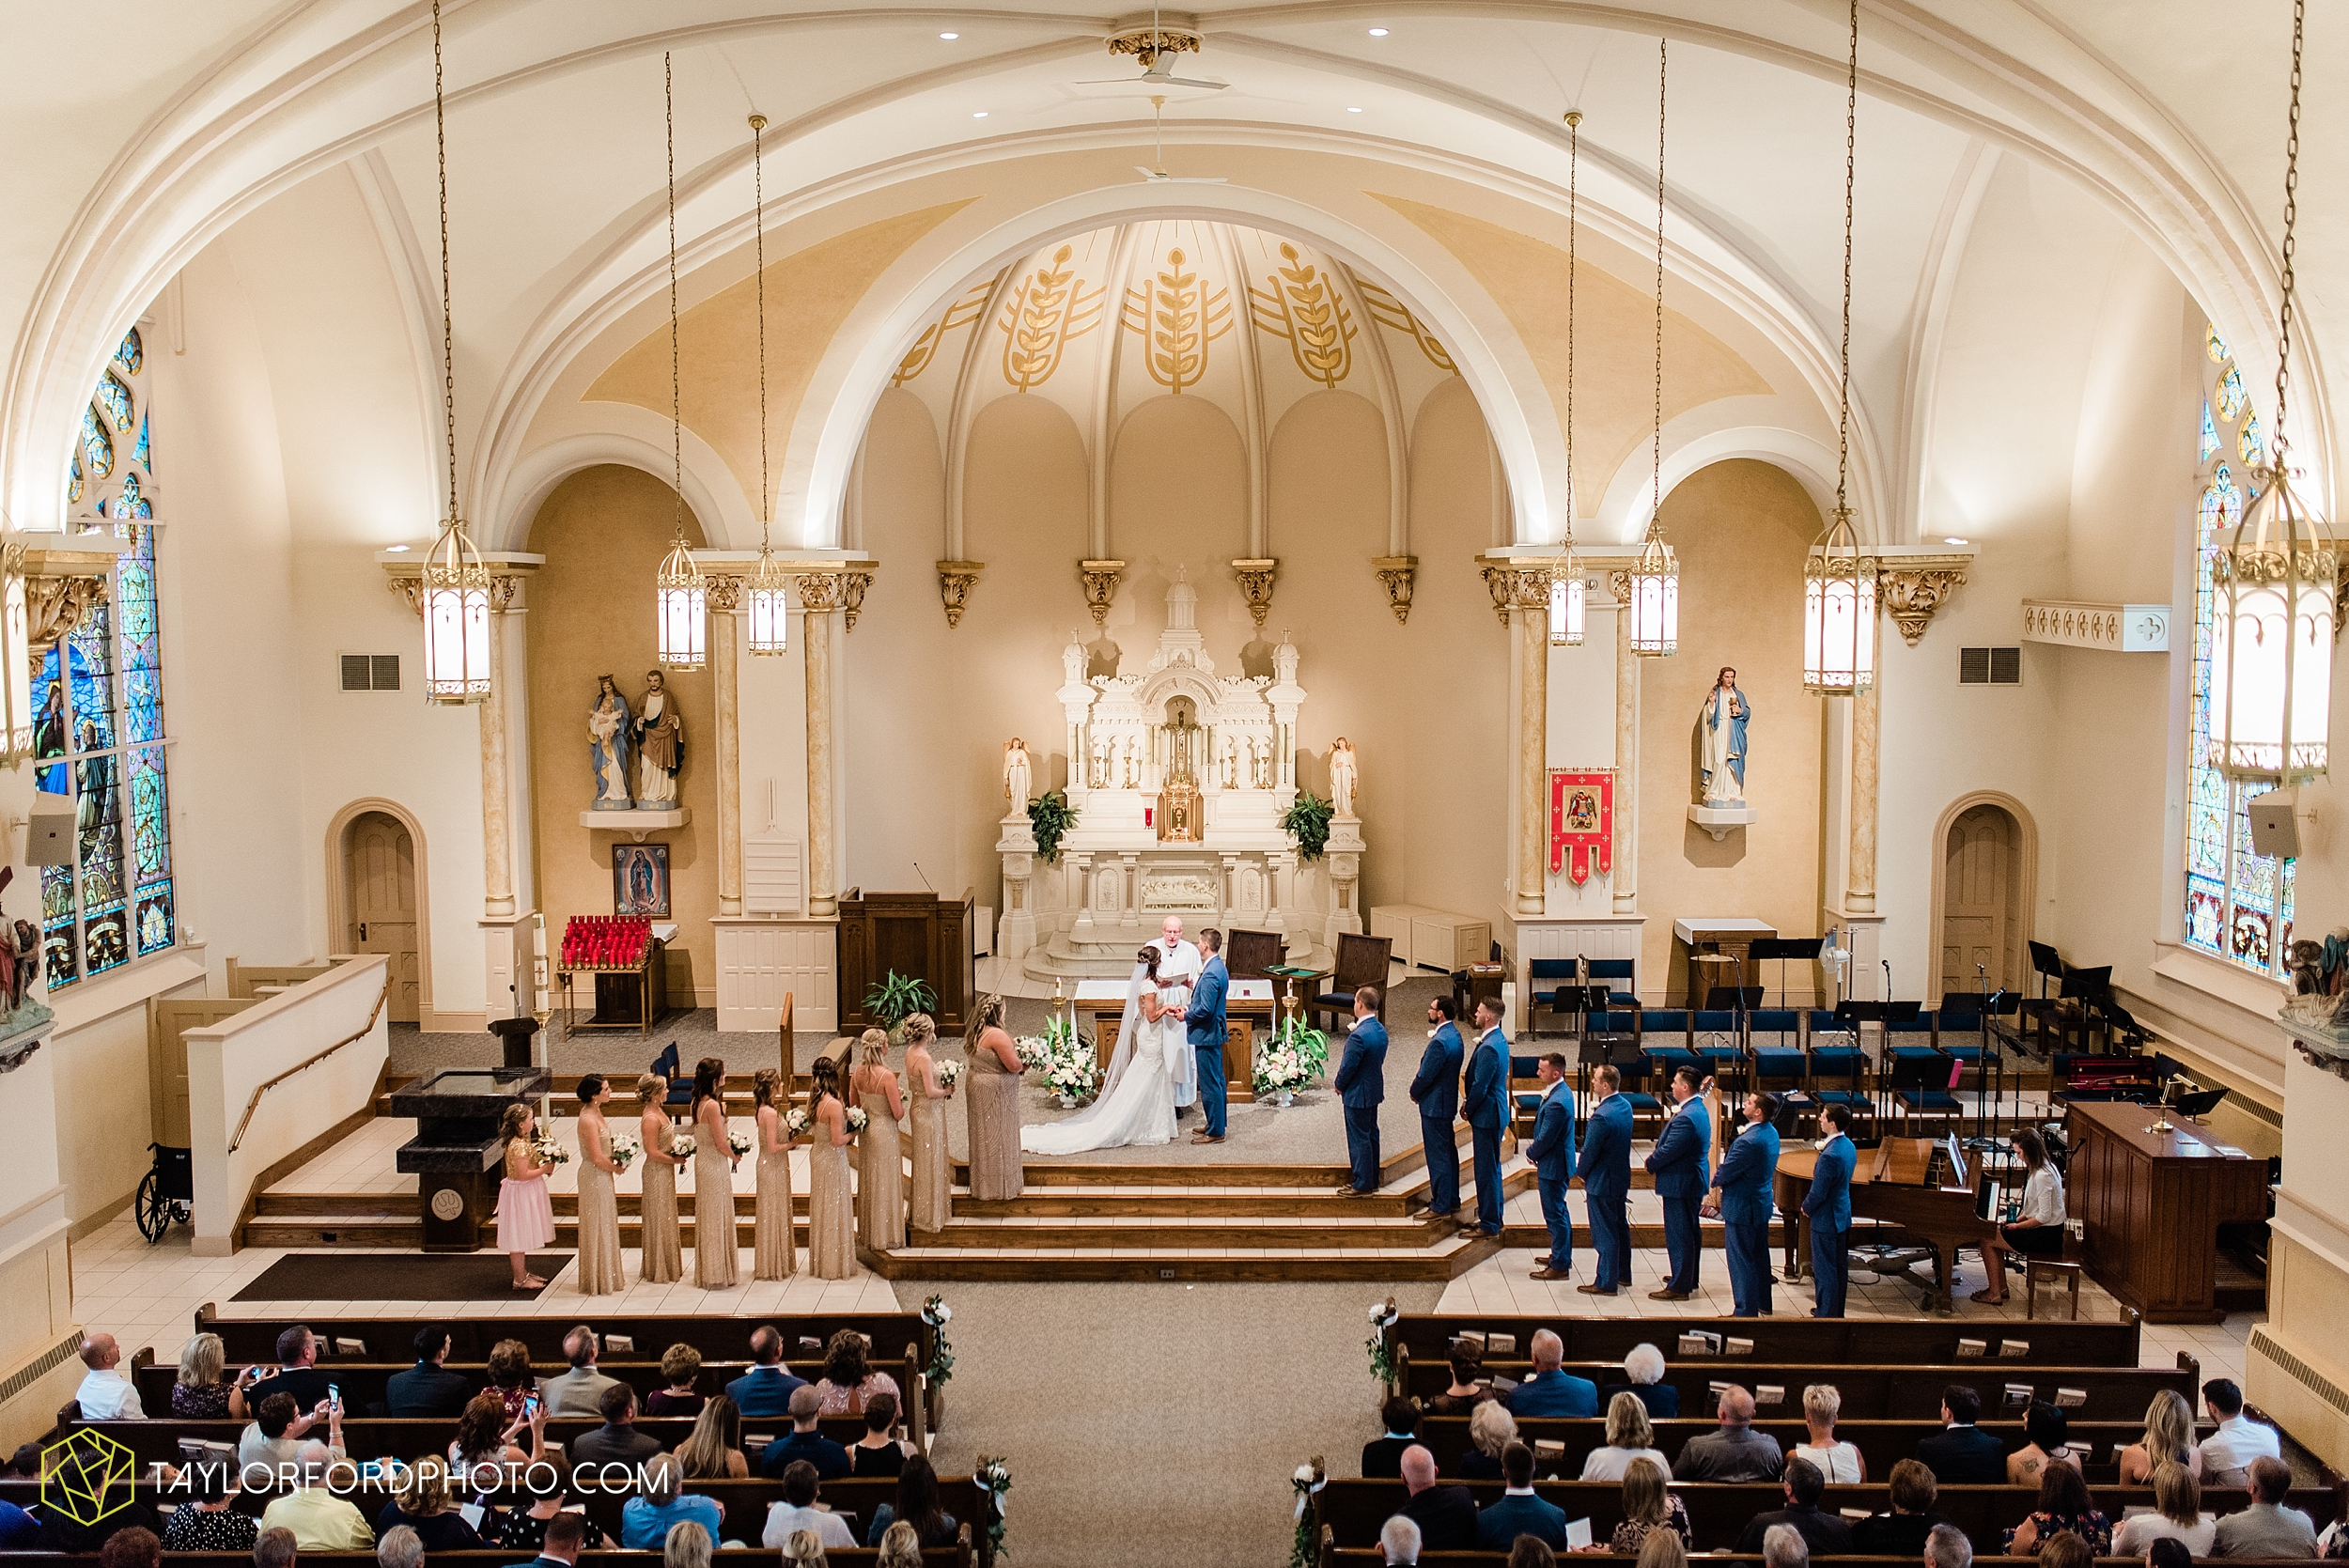 kacee-haden-sholl-second-story-saint-marys-knights-of-columbus-defiance-ohio-wedding-photographer-taylor-ford-photography_0154.jpg